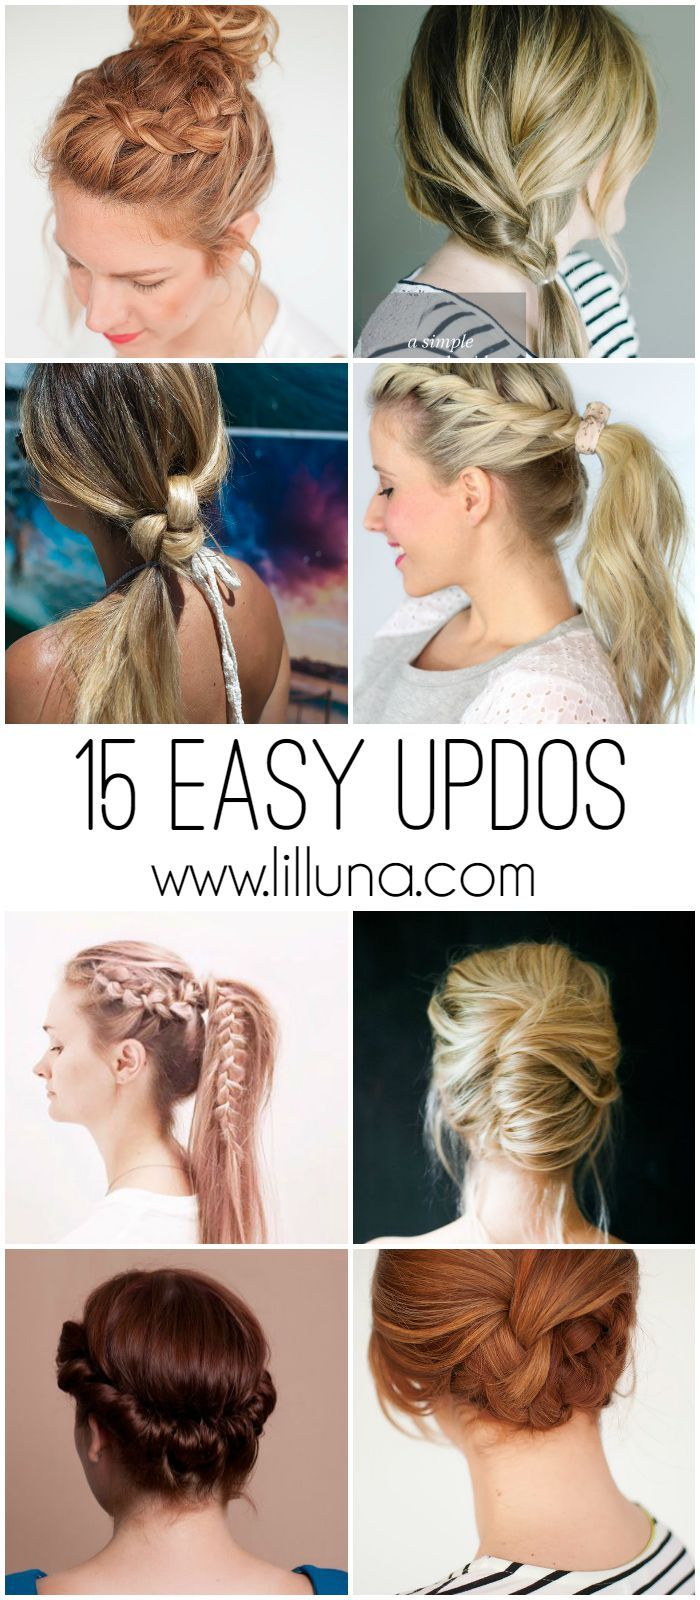 15 easy updos for all lengths and types of hair Perfect for lazy days and rushed mornings when